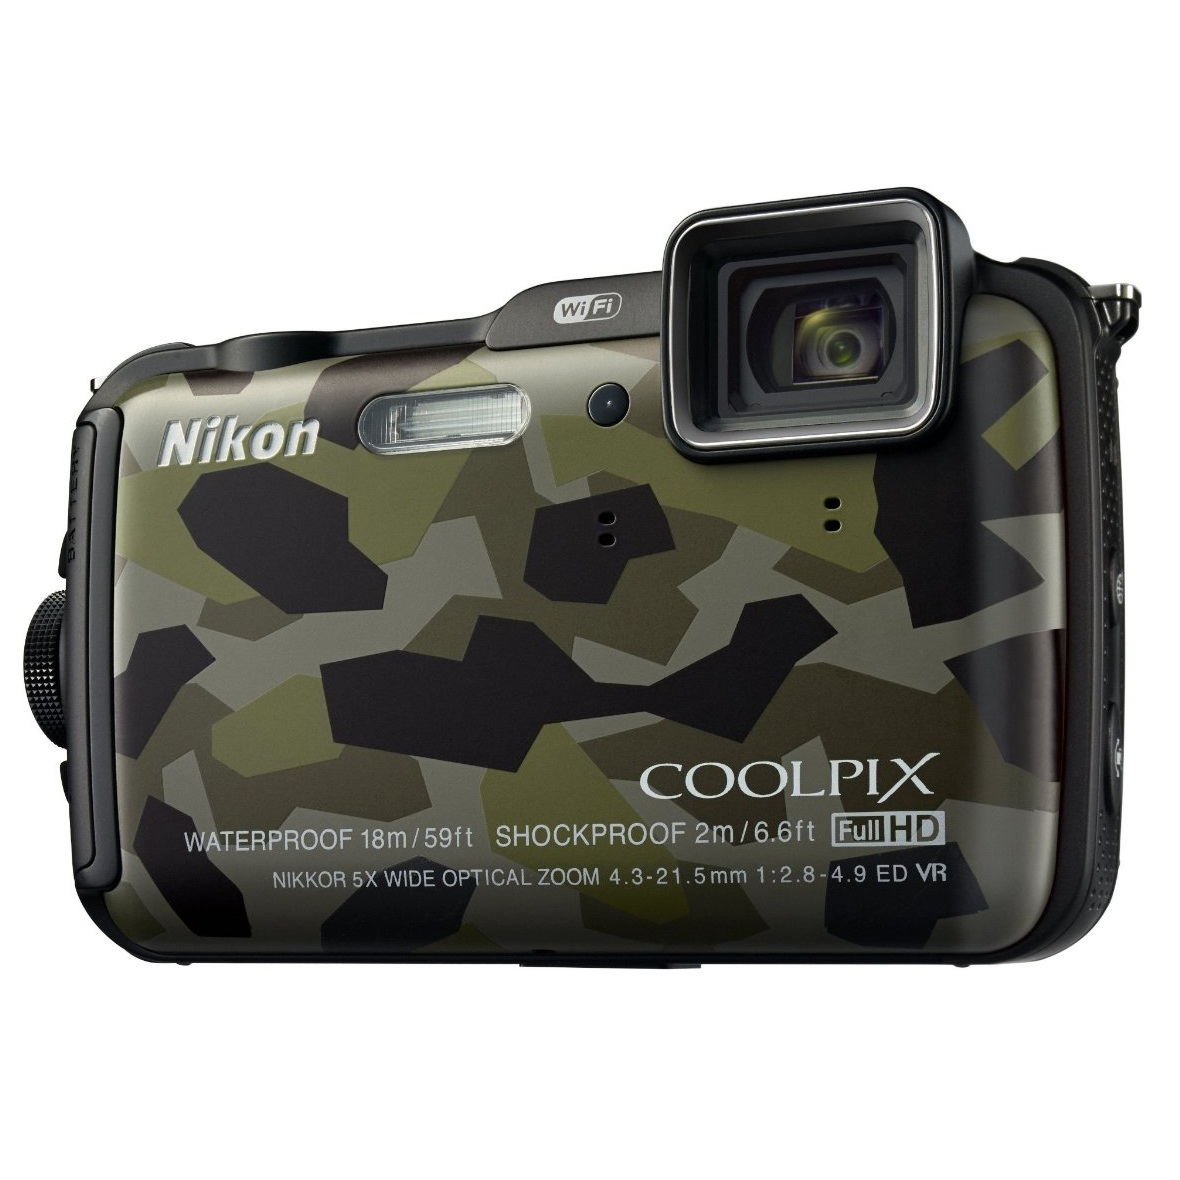 Nikon Coolpix AW120 Outdoor Digital Camera - Camouflage